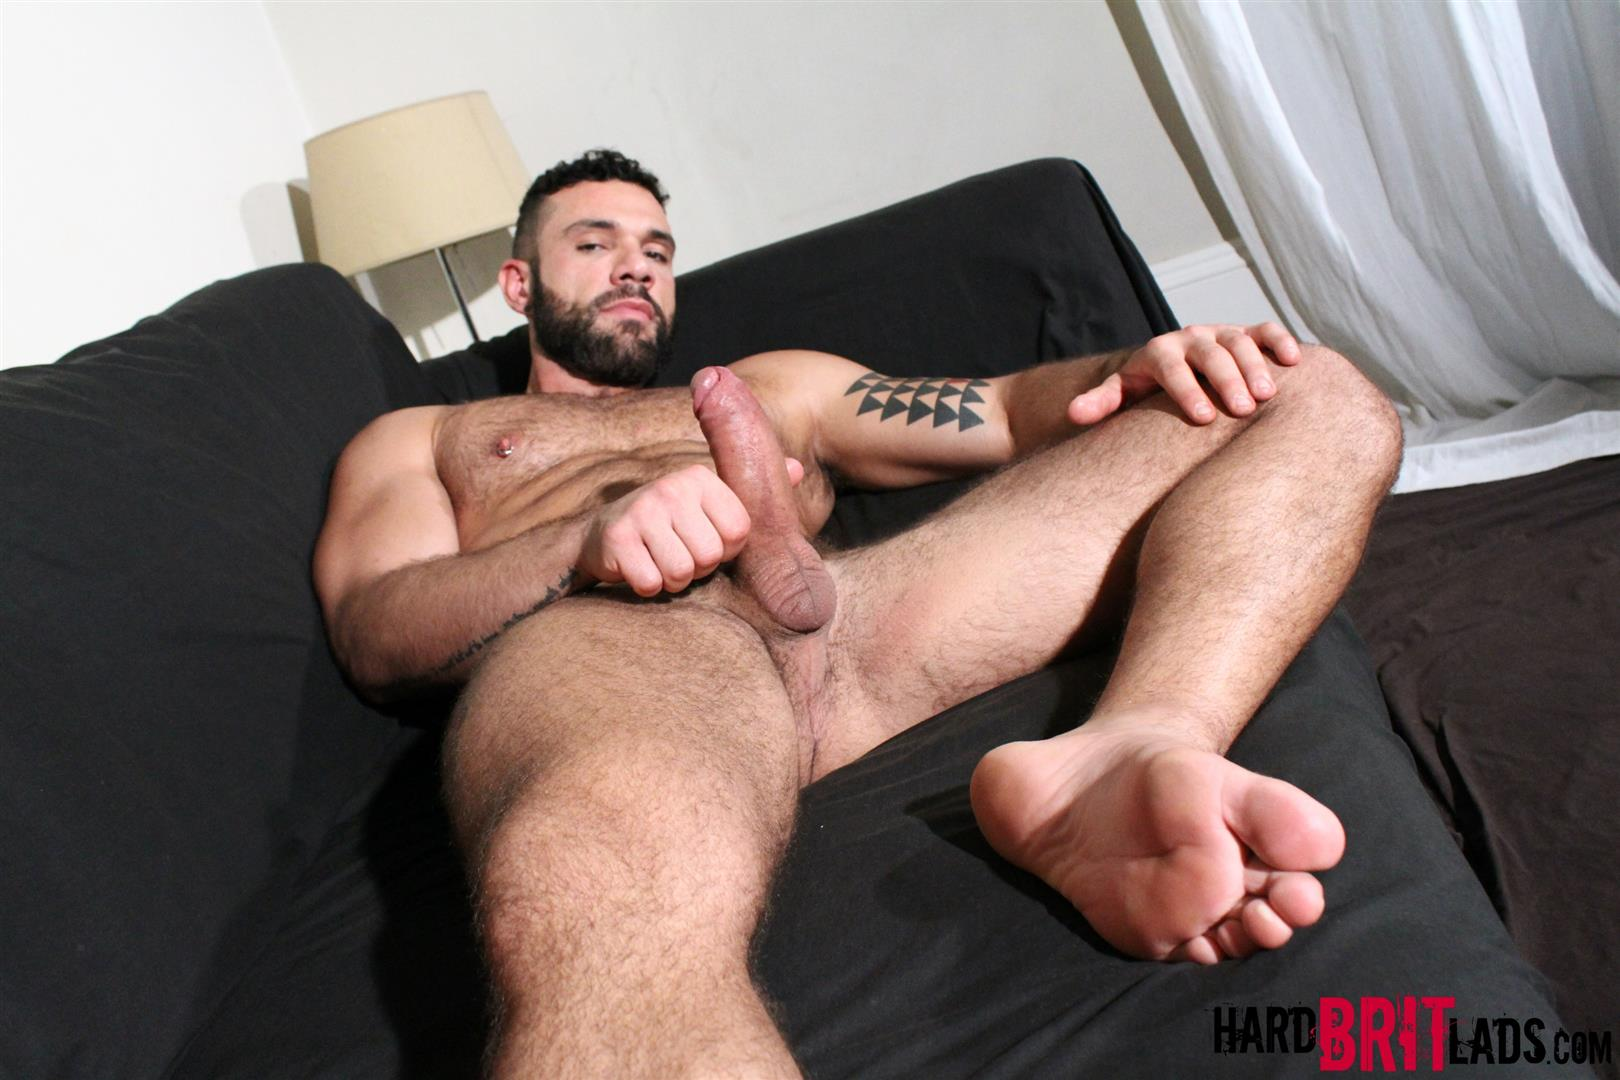 Hard-Brit-Lads-Letterio-Amadeo-Hairy-Rugby-Player-With-A-Big-uncut-Cock-Amateur-Gay-Porn-11 Beefy Hairy Muscle Rugby Player Playing With His Big Uncut Cock